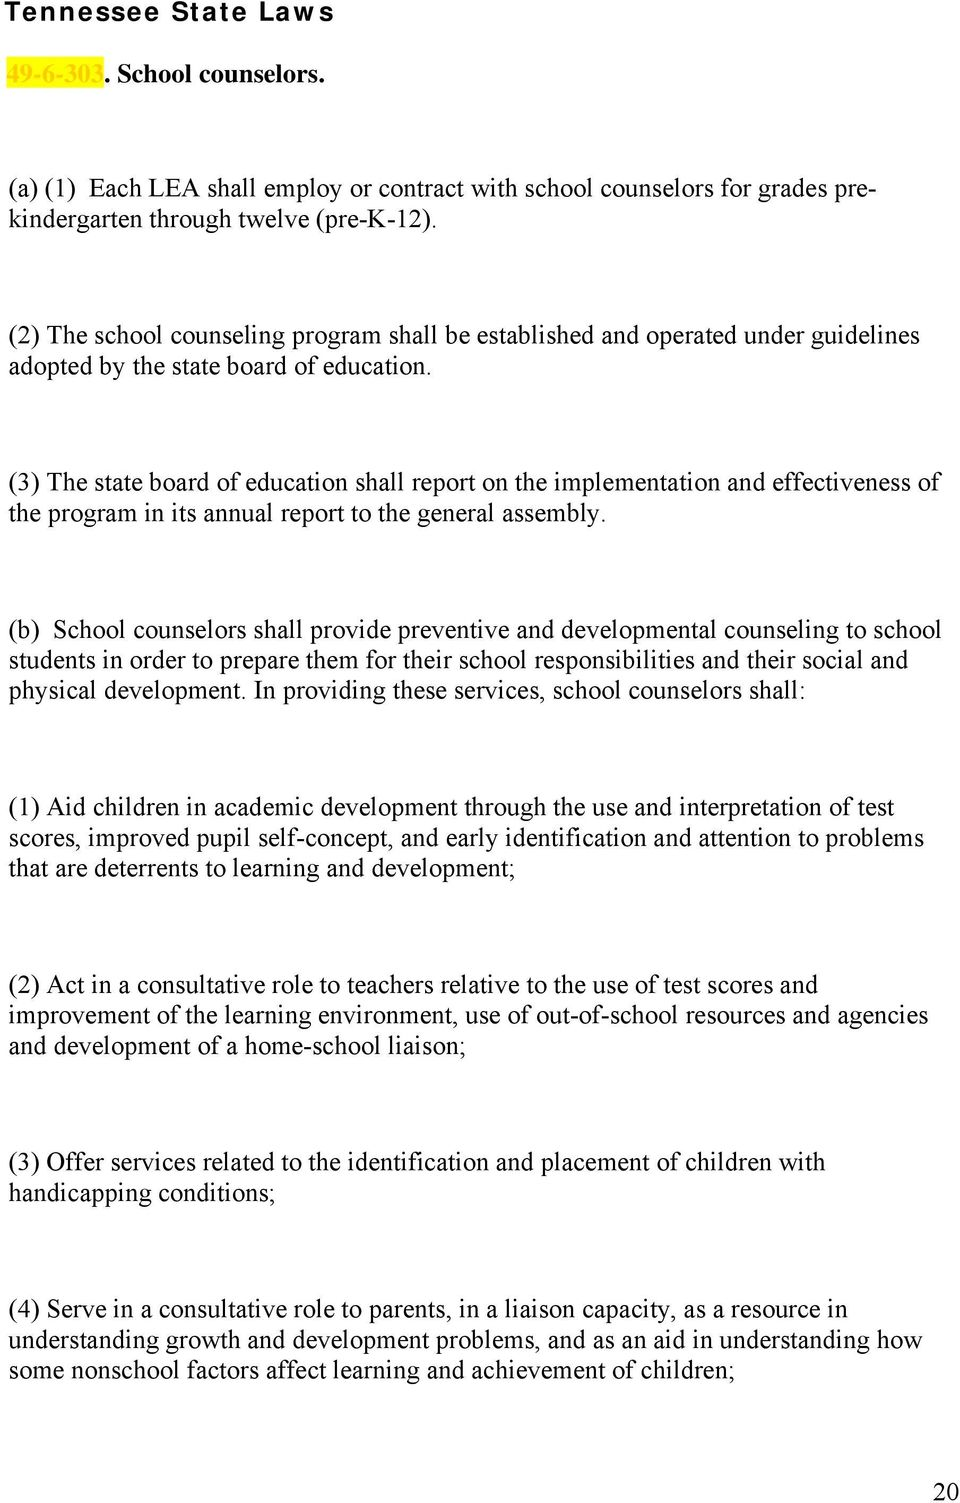 (3) The state board of education shall report on the implementation and effectiveness of the program in its annual report to the general assembly.